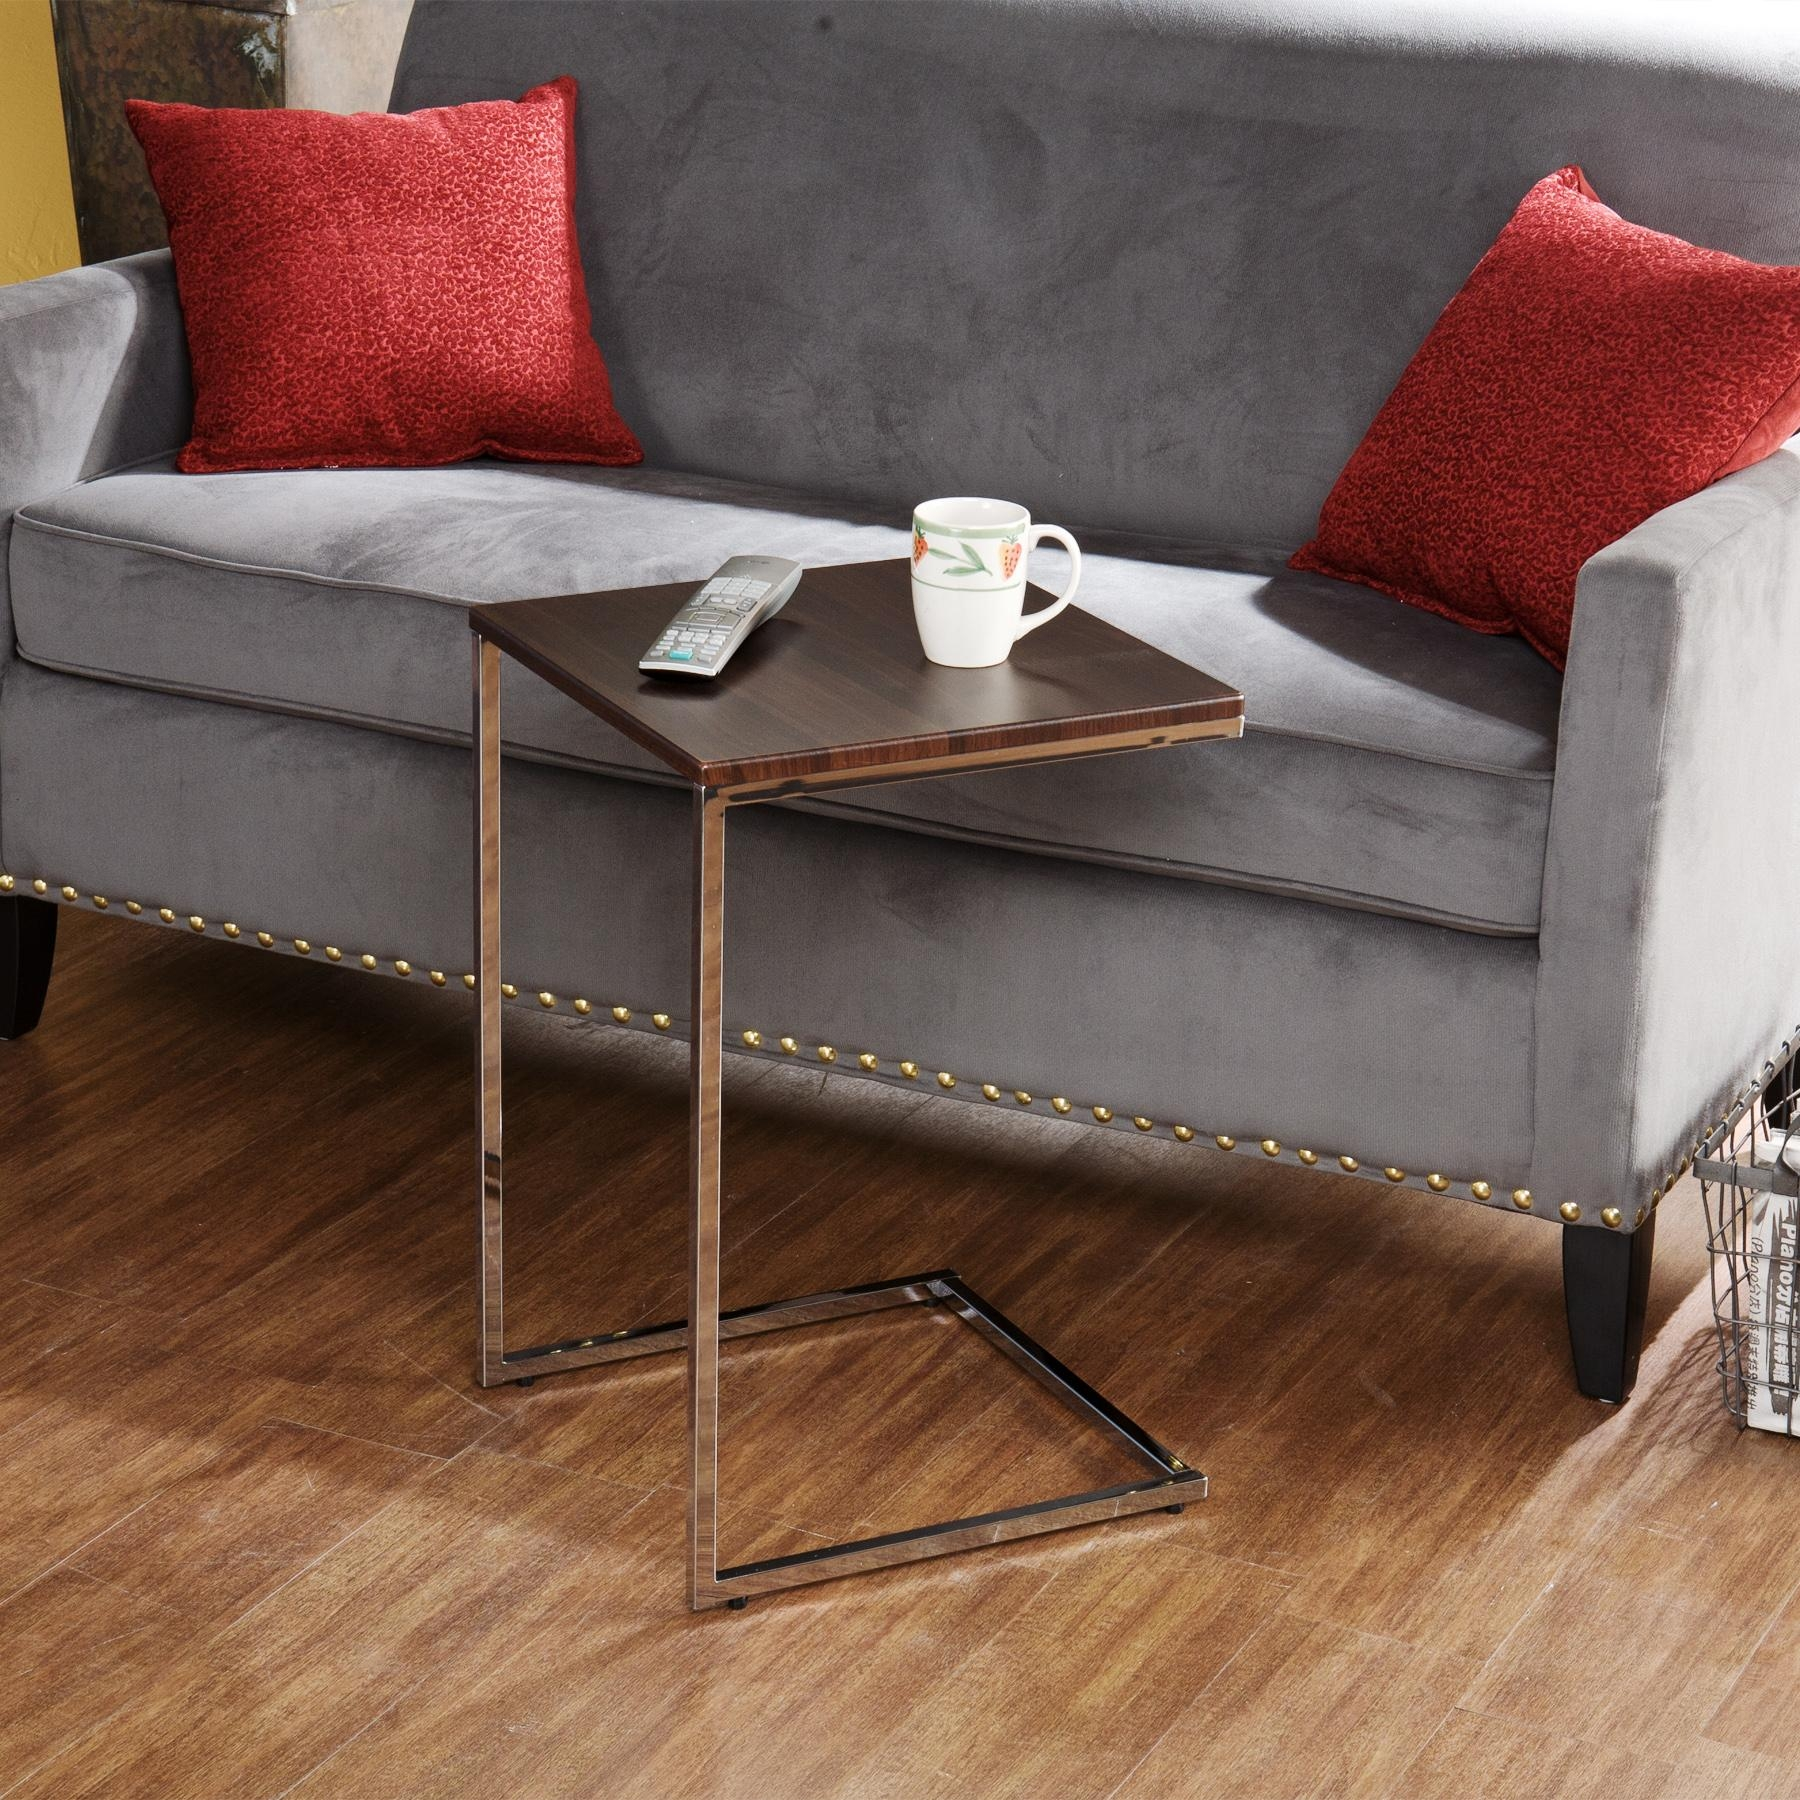 Sofas Center : Sofa Tray Tables Amazing Design Bendable Dark In Under Sofa Tray Tables (Image 11 of 20)